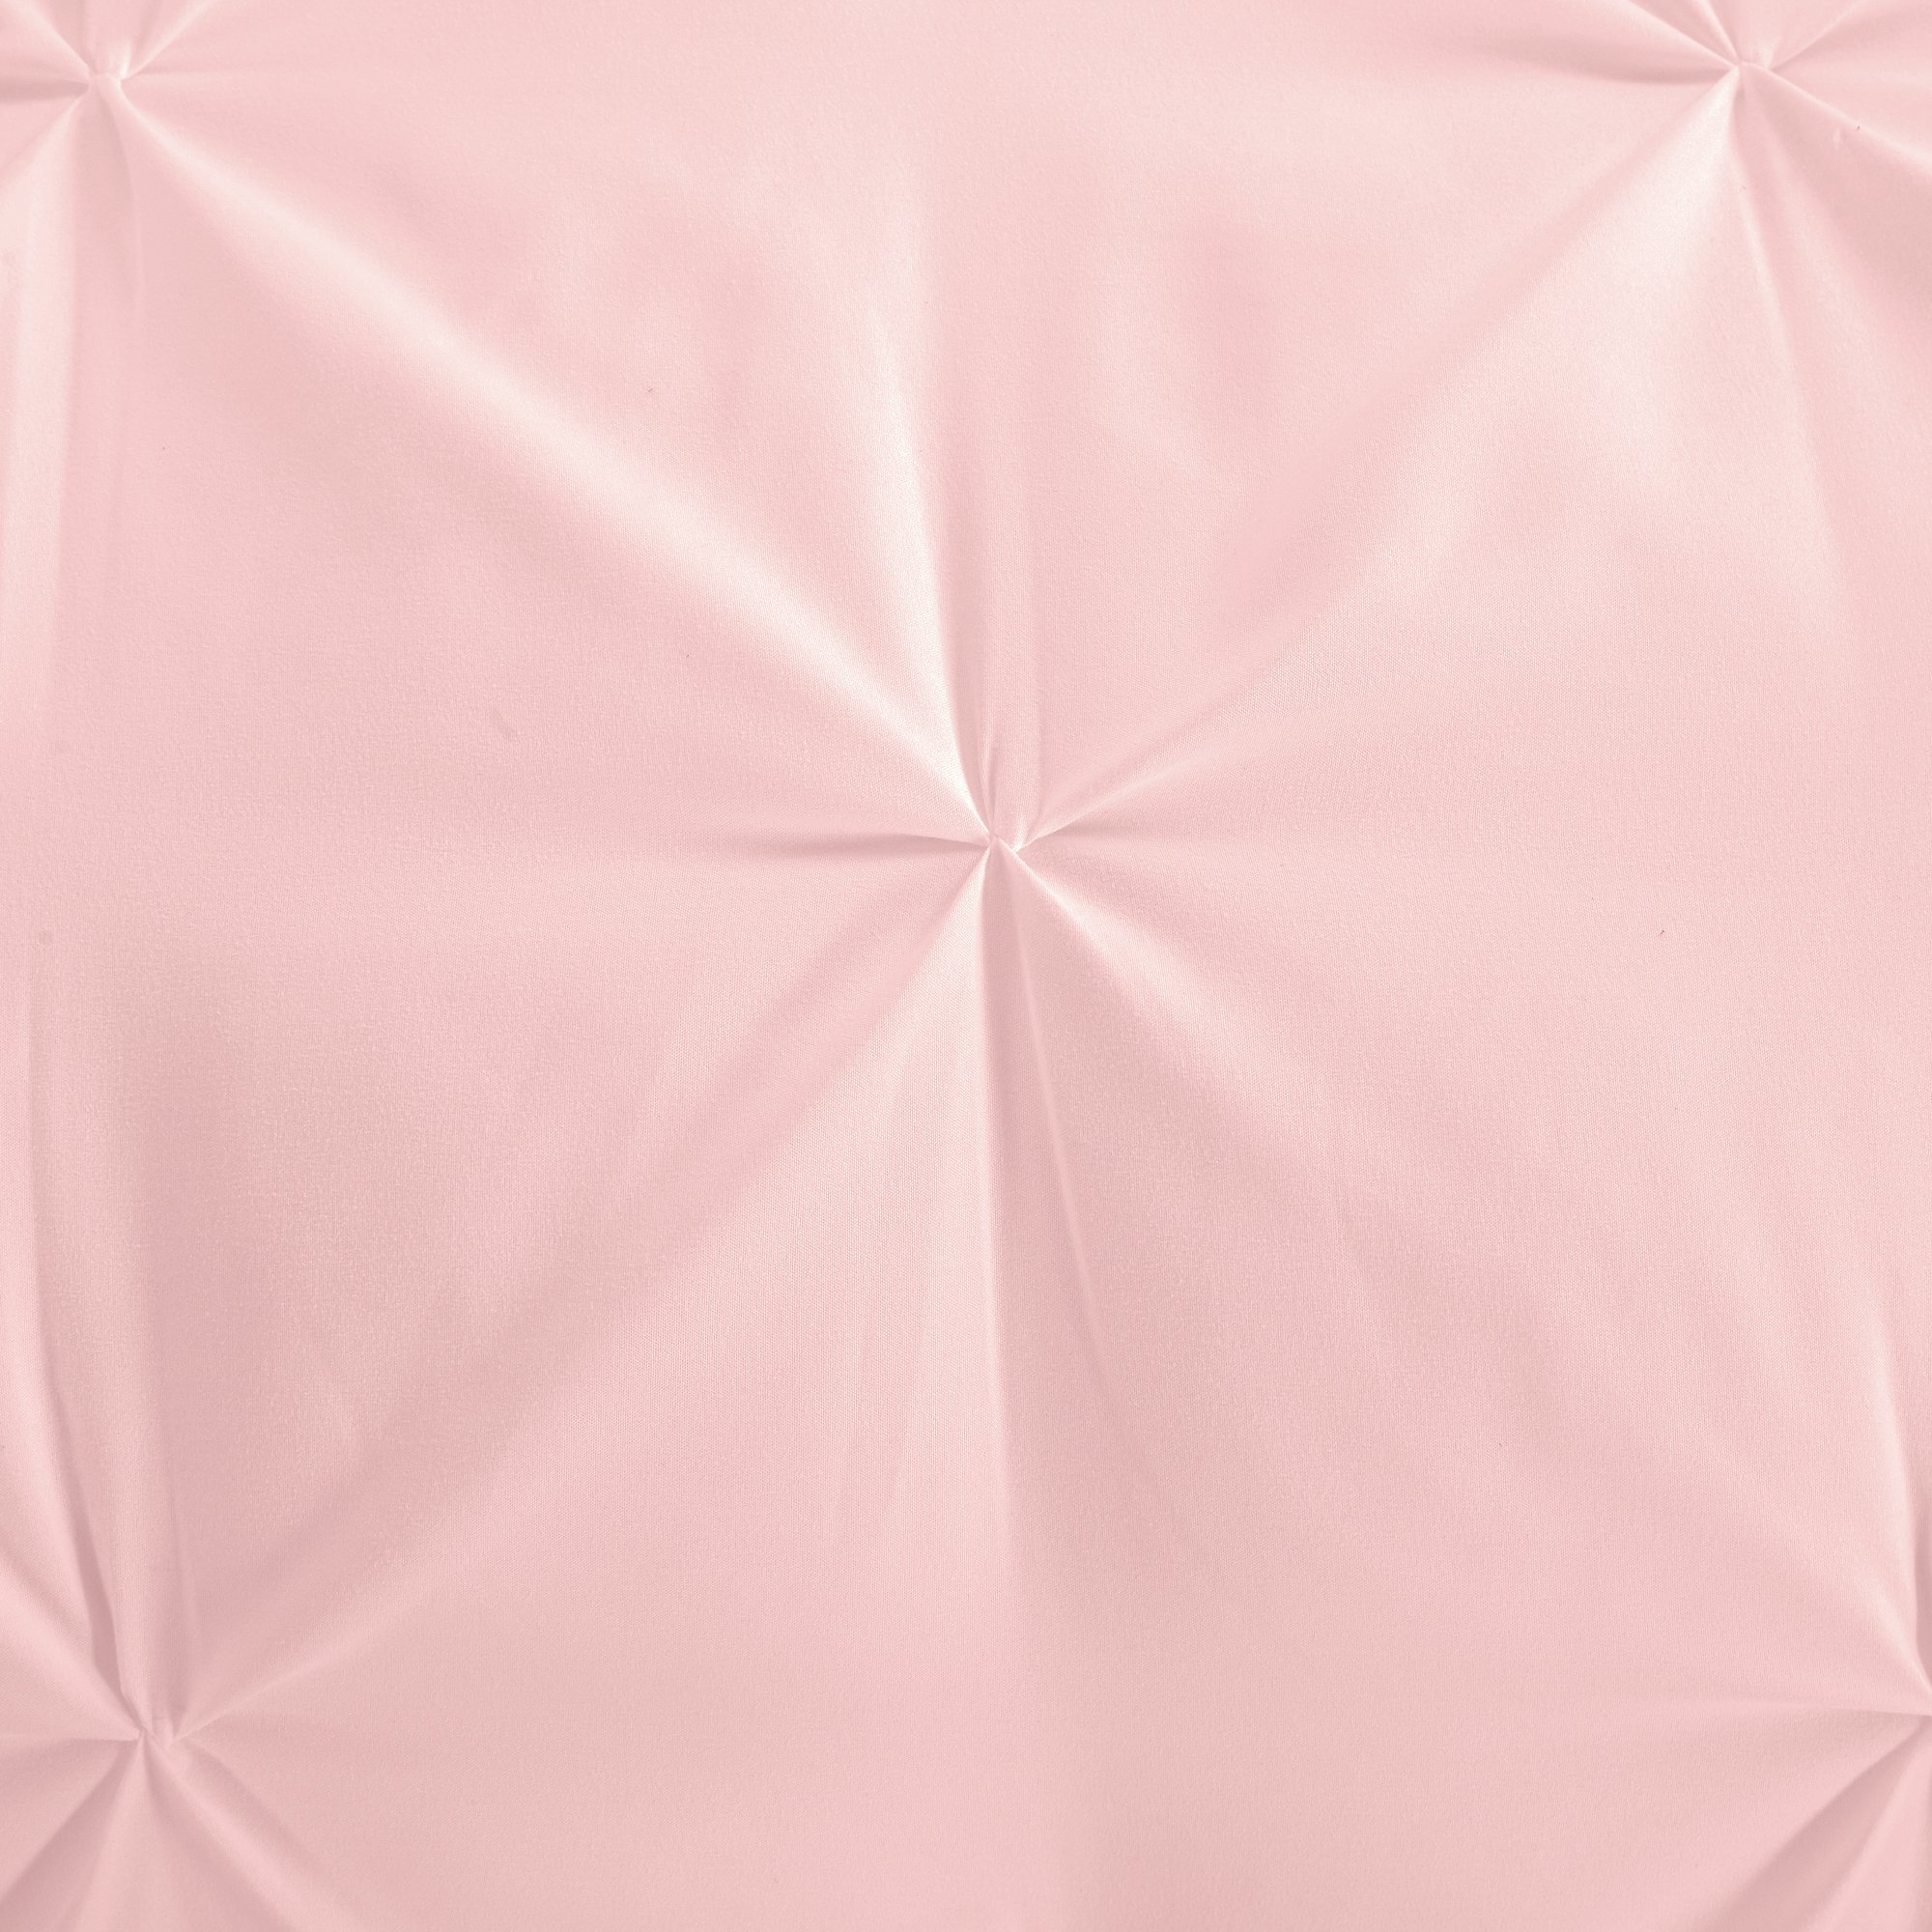 EVOLIVE 3pc Set Pinch Pleat/Kiss Pleat, Pintuck Down Alternative Comforter Set with Pompom (Twin, Pink) by EVOLIVE (Image #3)